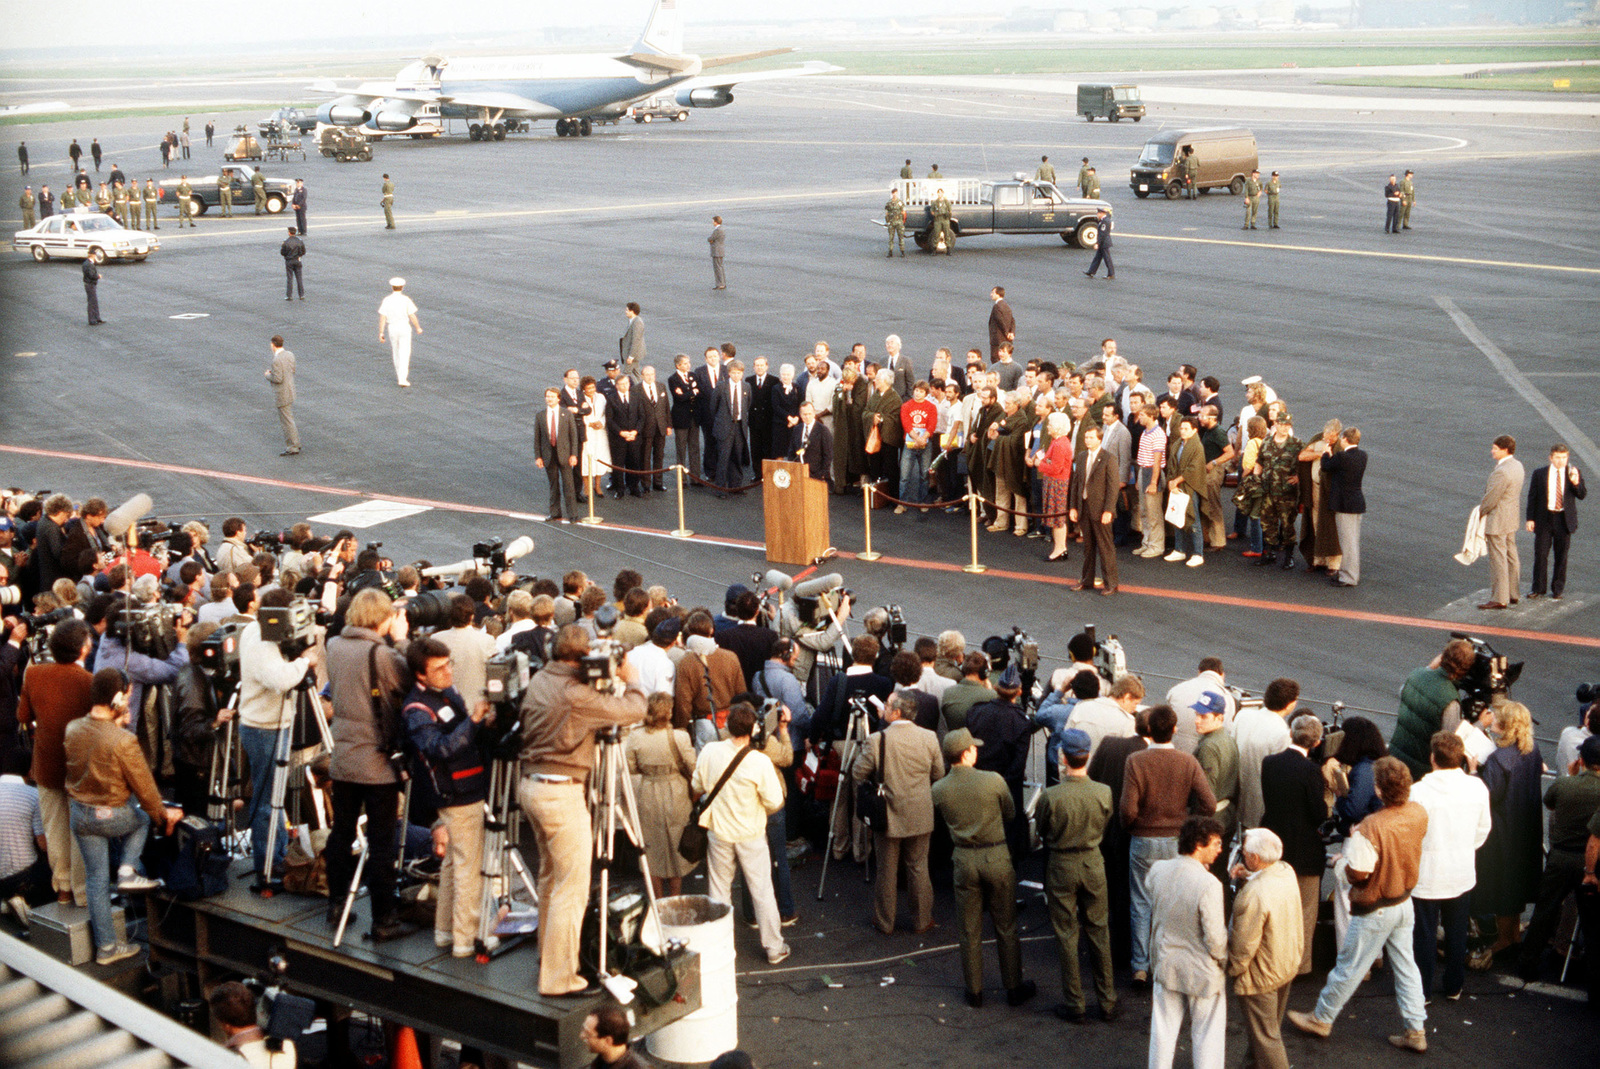 Vice President George Bush speaks at the arrival of former TWA hostages. The 39 US citizens had been held captive for 16 days in Beirut, Lebanon, by Shiite Moslem terrorists